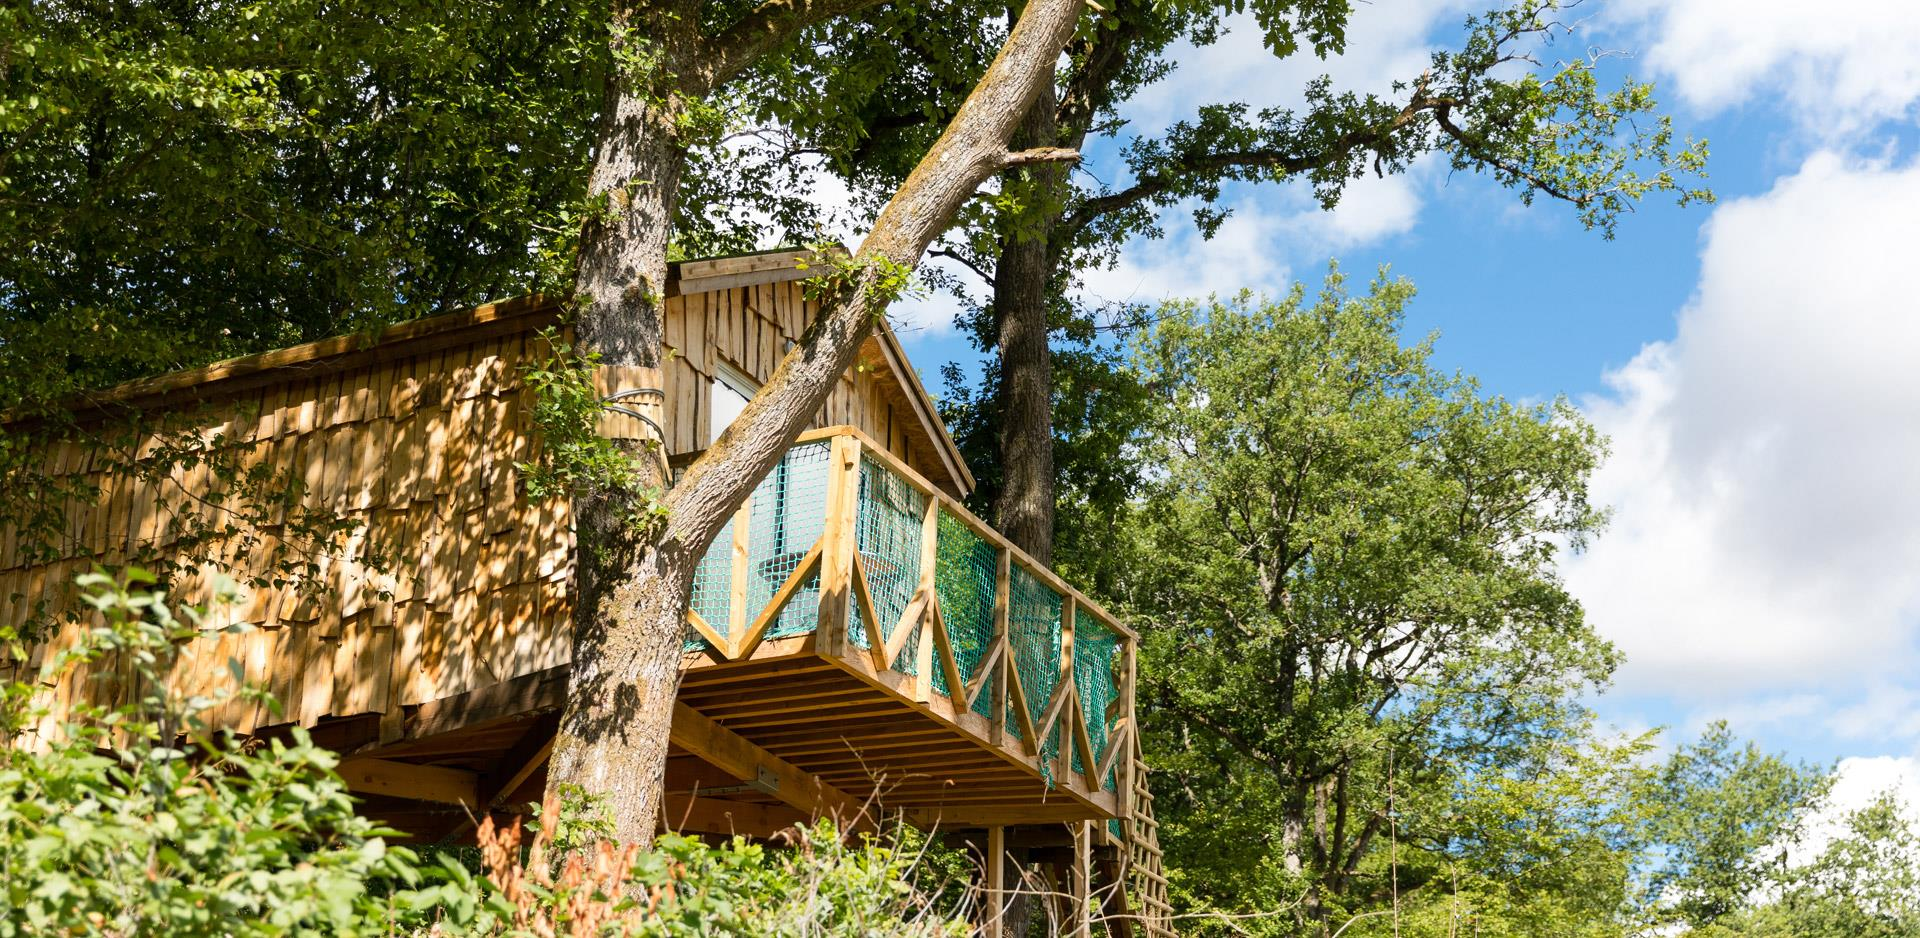 The suspended in the trees hut Robin Hood, atypical accommodation in Alsace at the campsite Les Castors